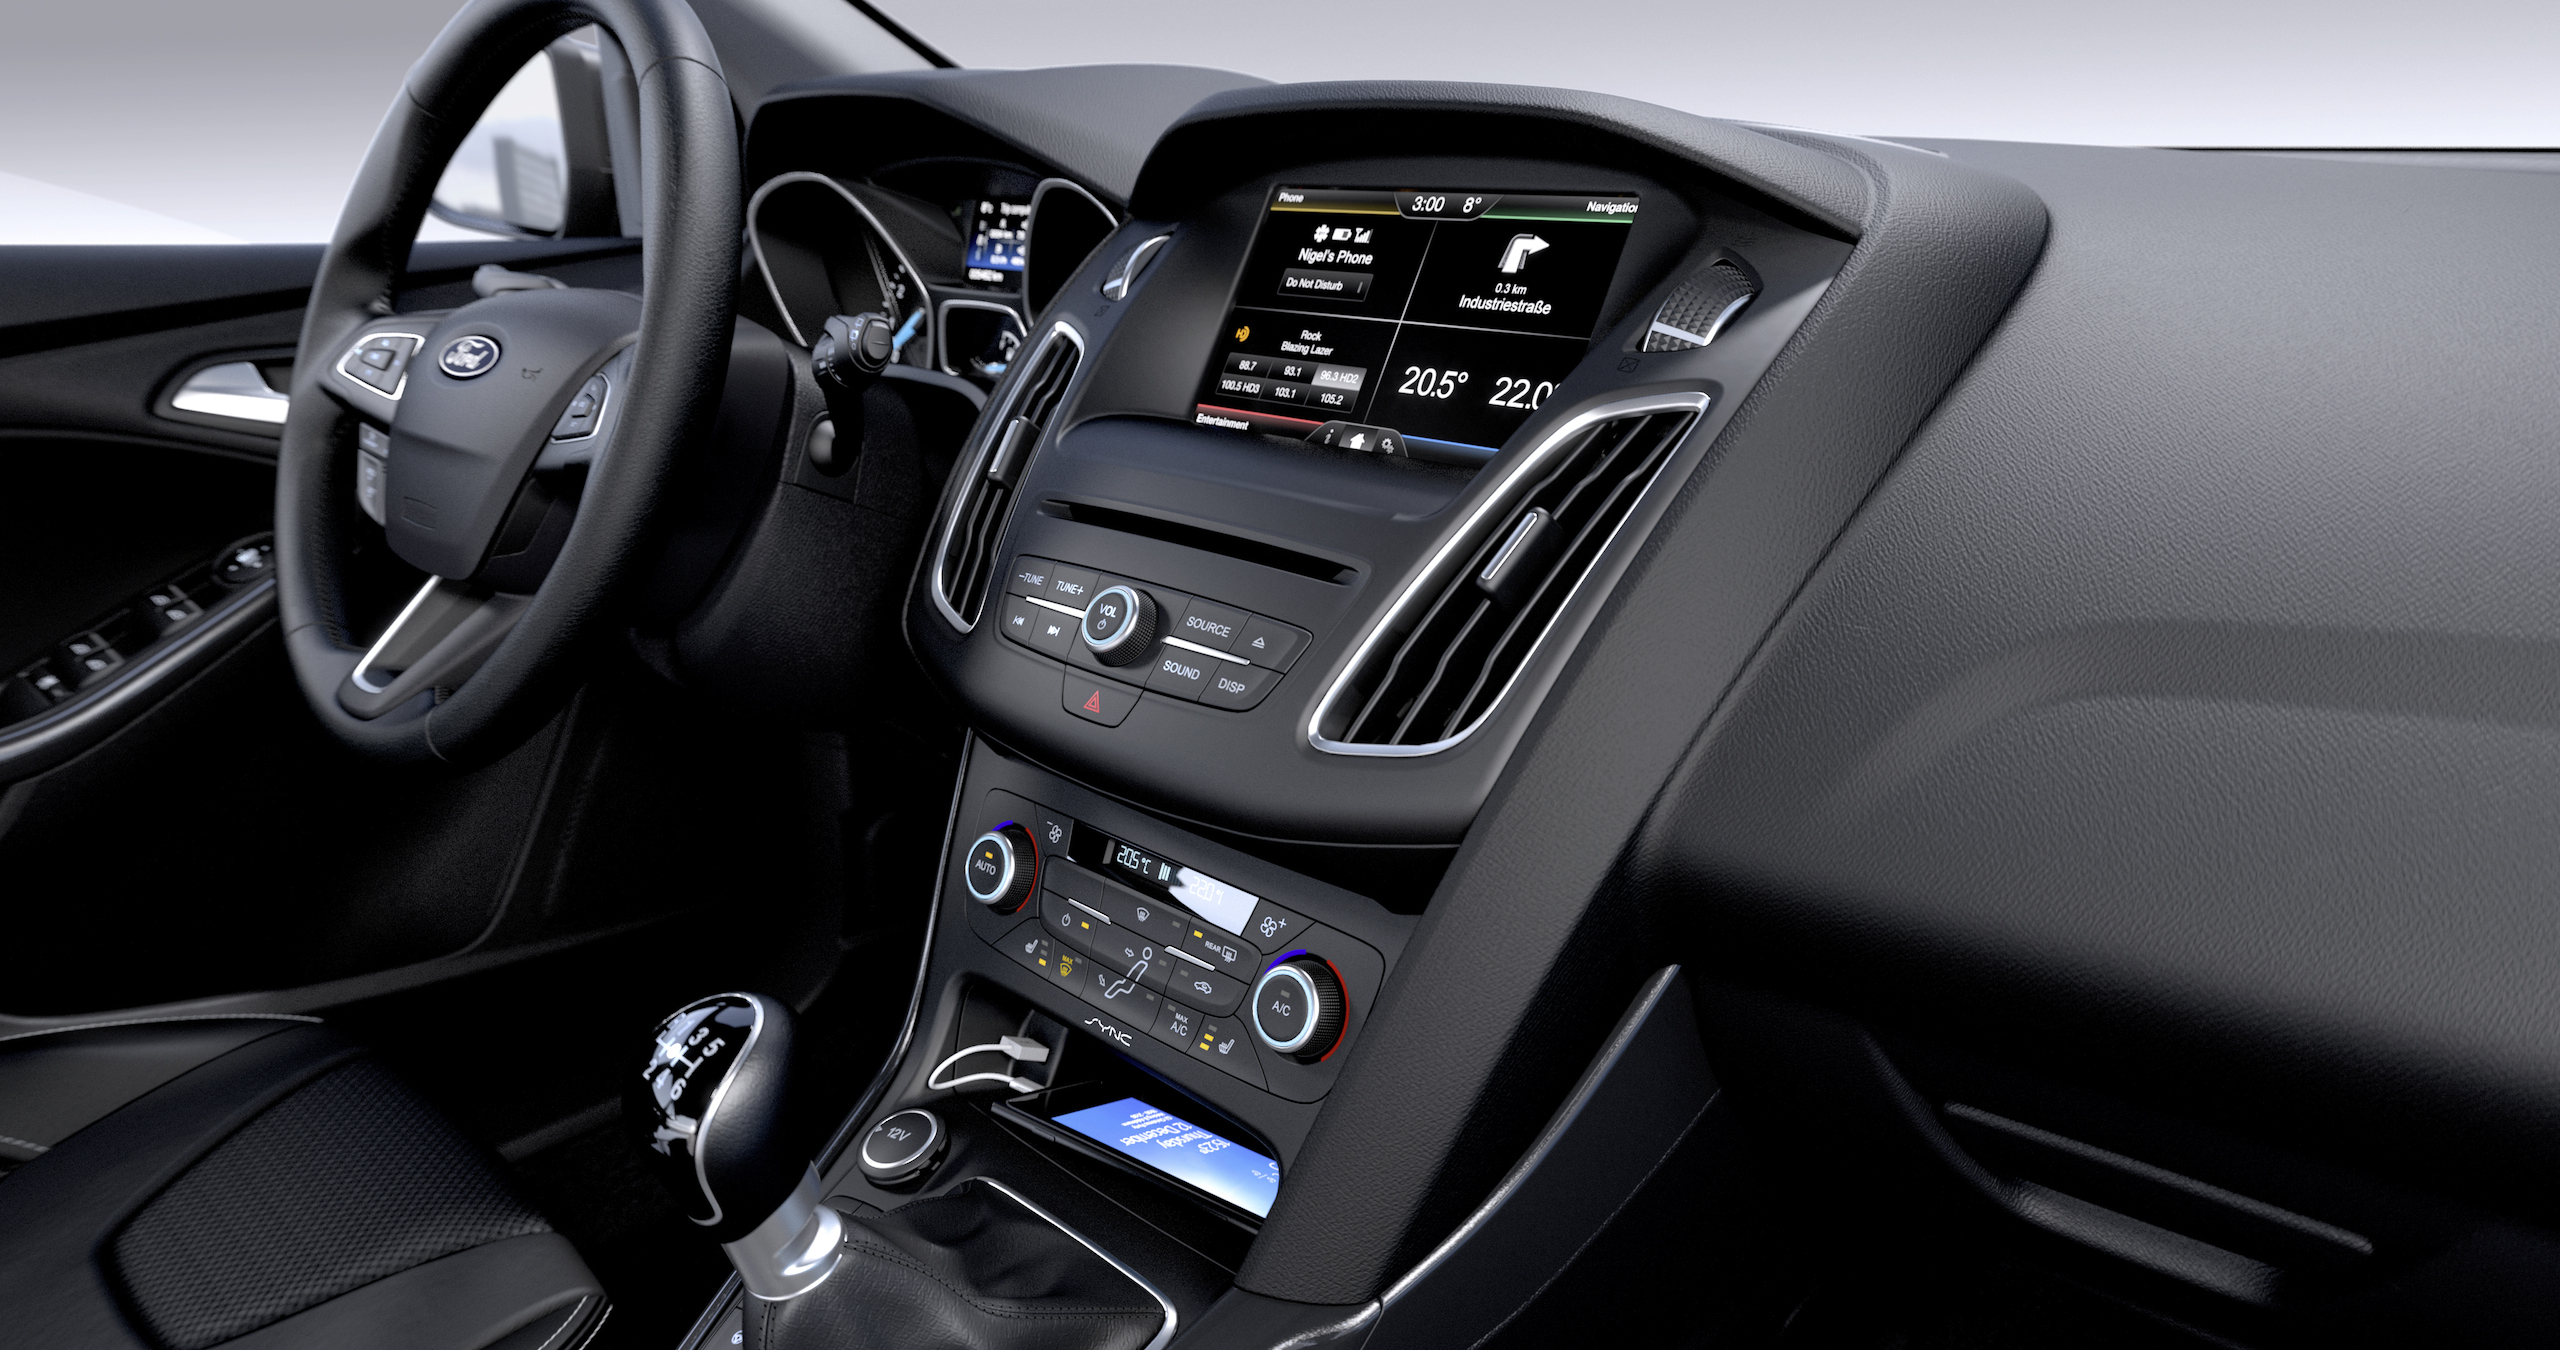 2014 Ford Focus Facelift Gets Revised Looks And Interior